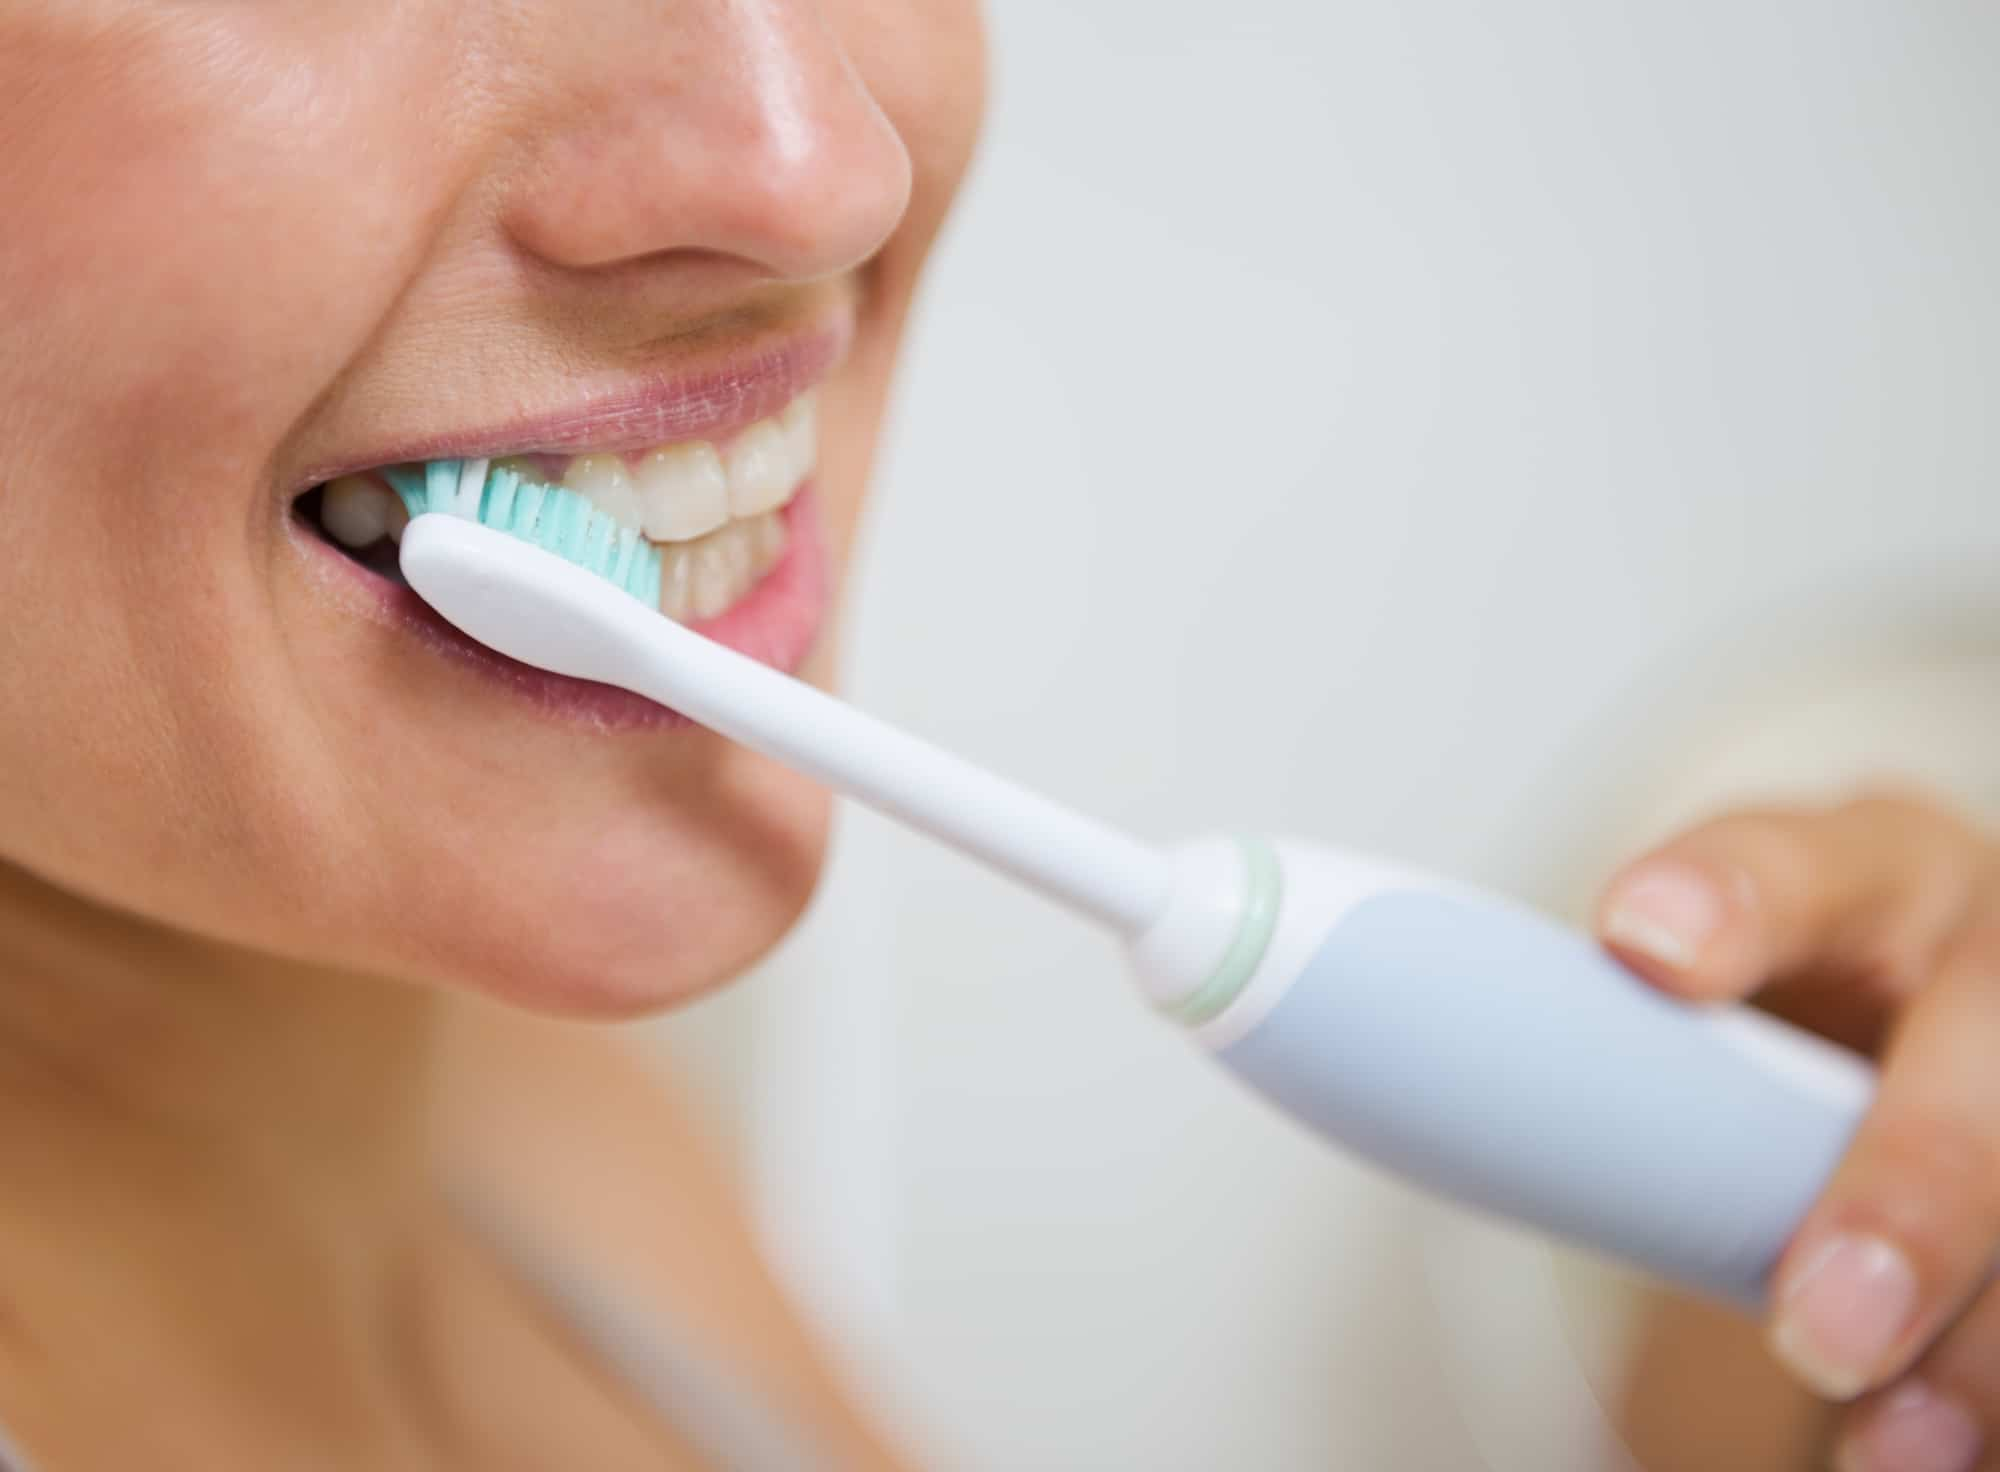 can electric toothbrushes cause gum recession